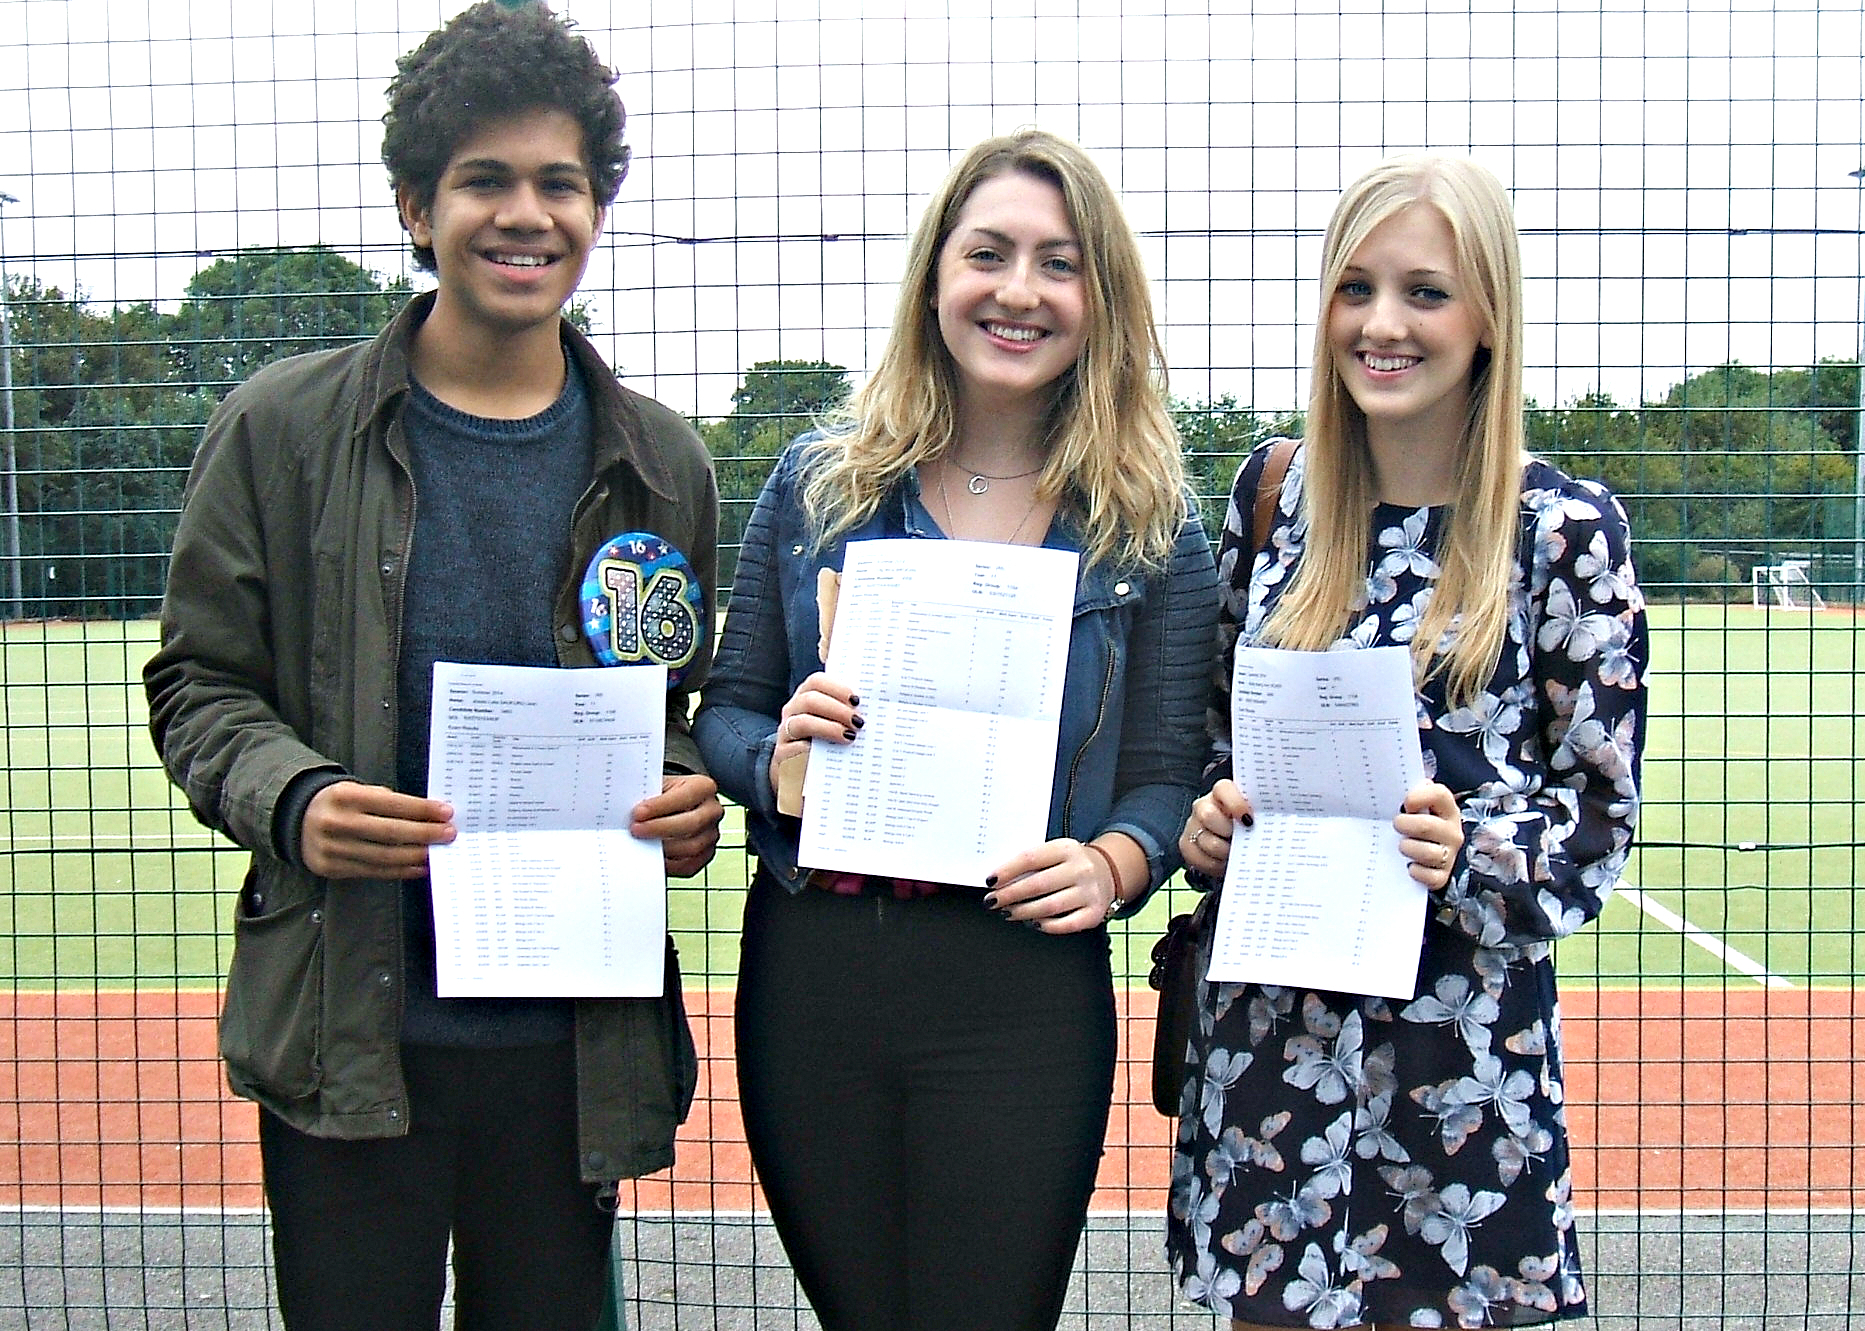 Birthday boy Joe Sauturu, Tilly Brogan and Holly Vicker, all 16, celebrate their results at Winterbourne International Academy